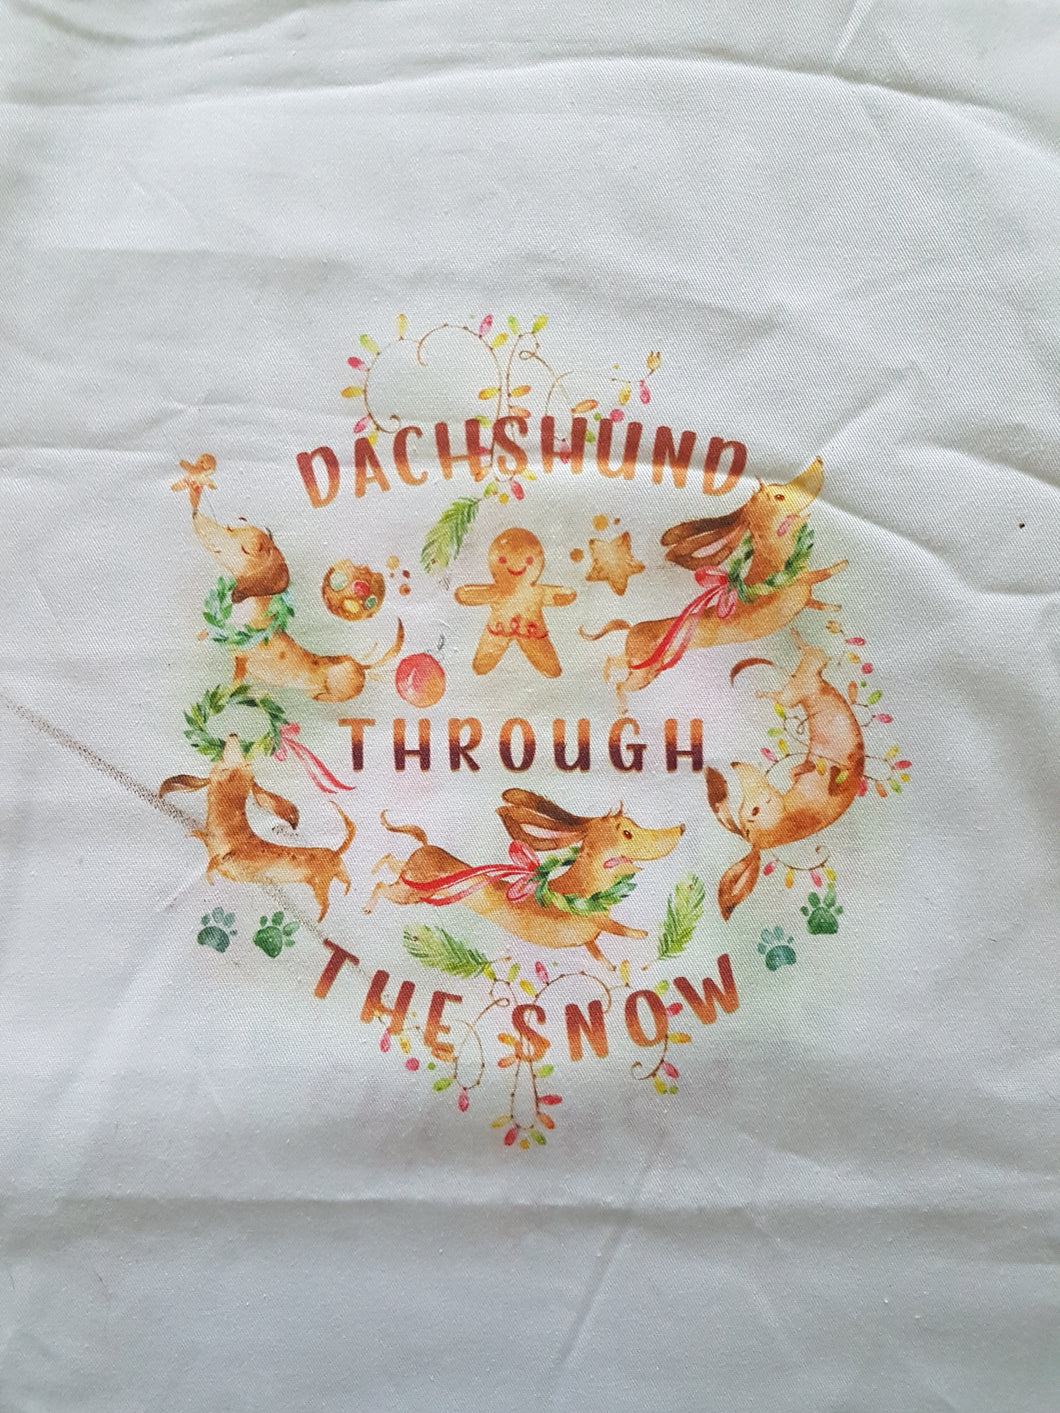 Booksleeve - Dachshund Through the Snow Panel